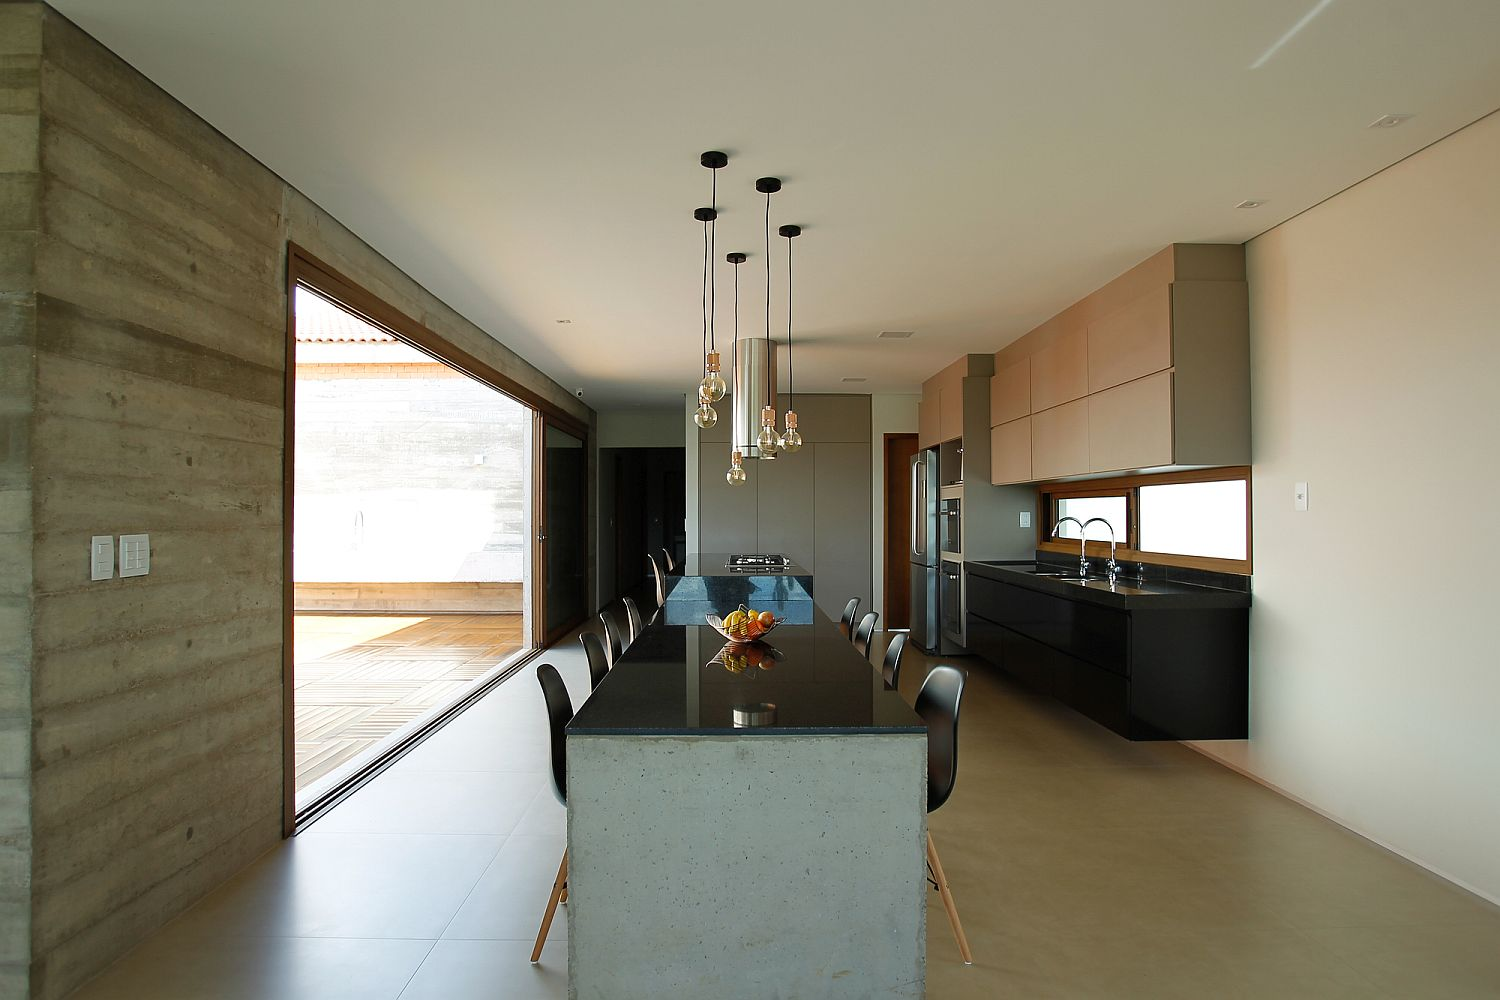 Simple-and-industrial-style-Edison-bulb-lighting-for-the-kitchen